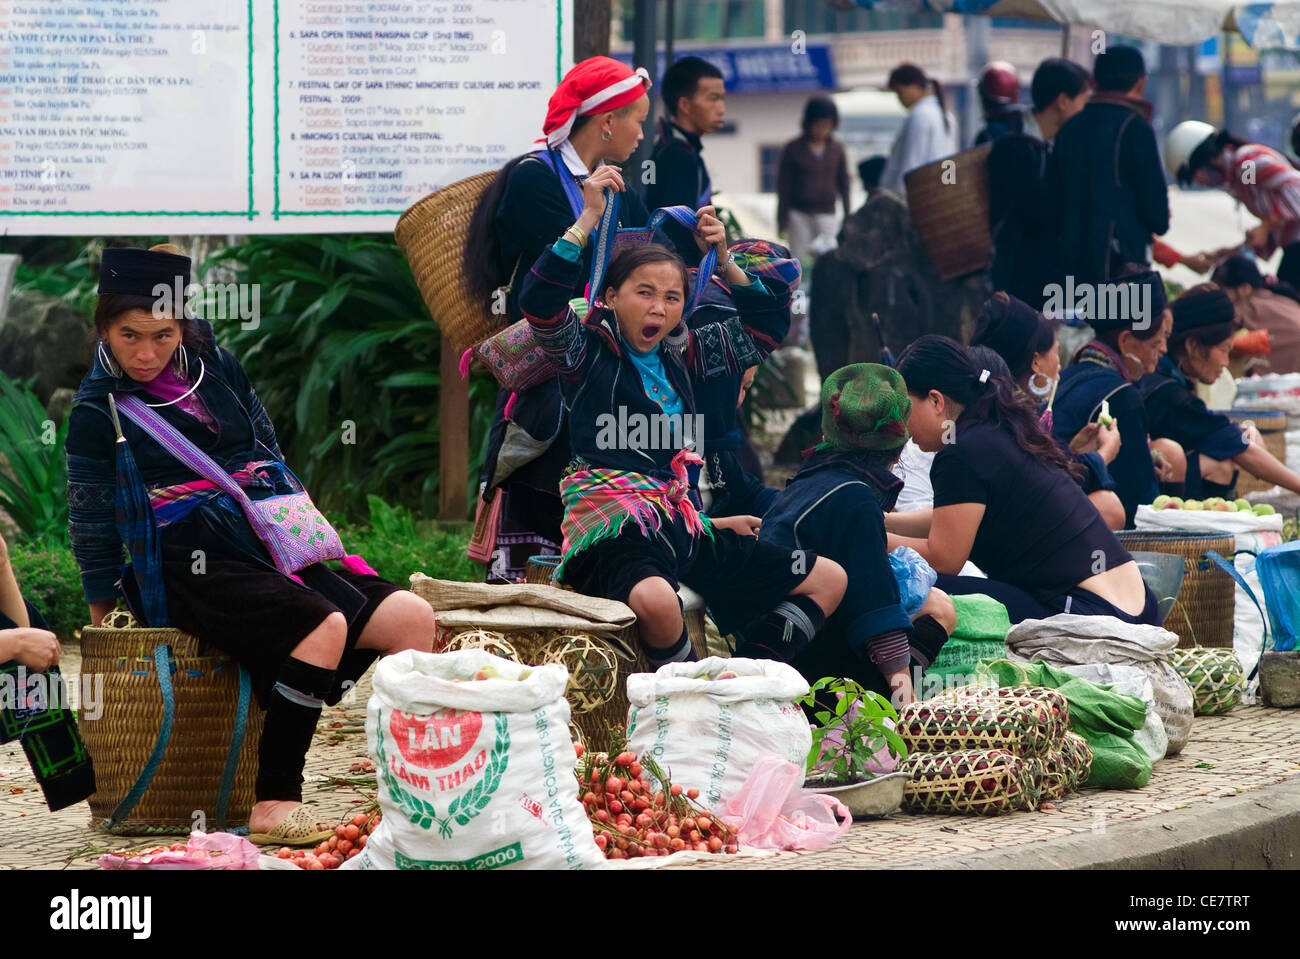 Hilltribe people sell their goods at the market  in Sapa, Vietnam. - Stock Image